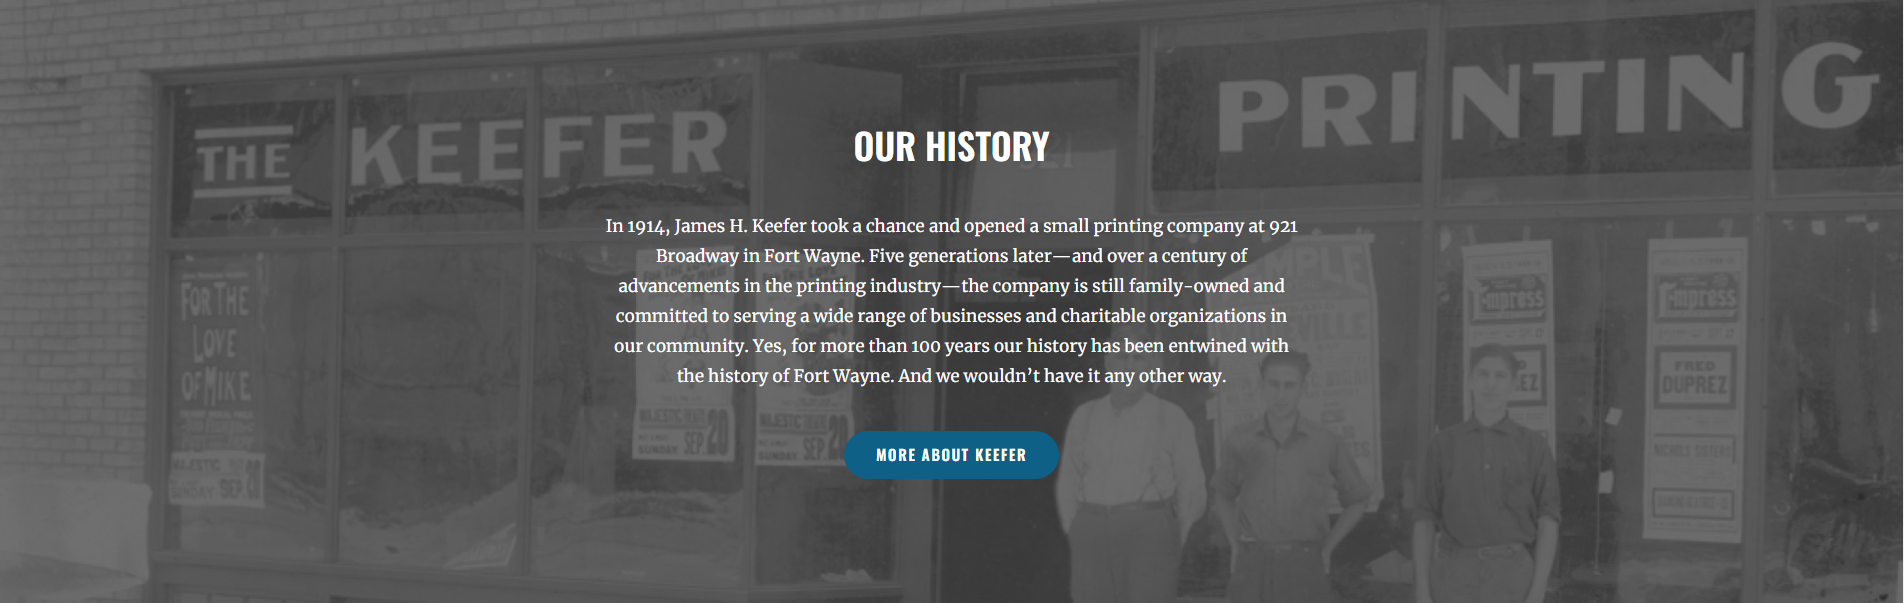 History section on Keefer Printing website